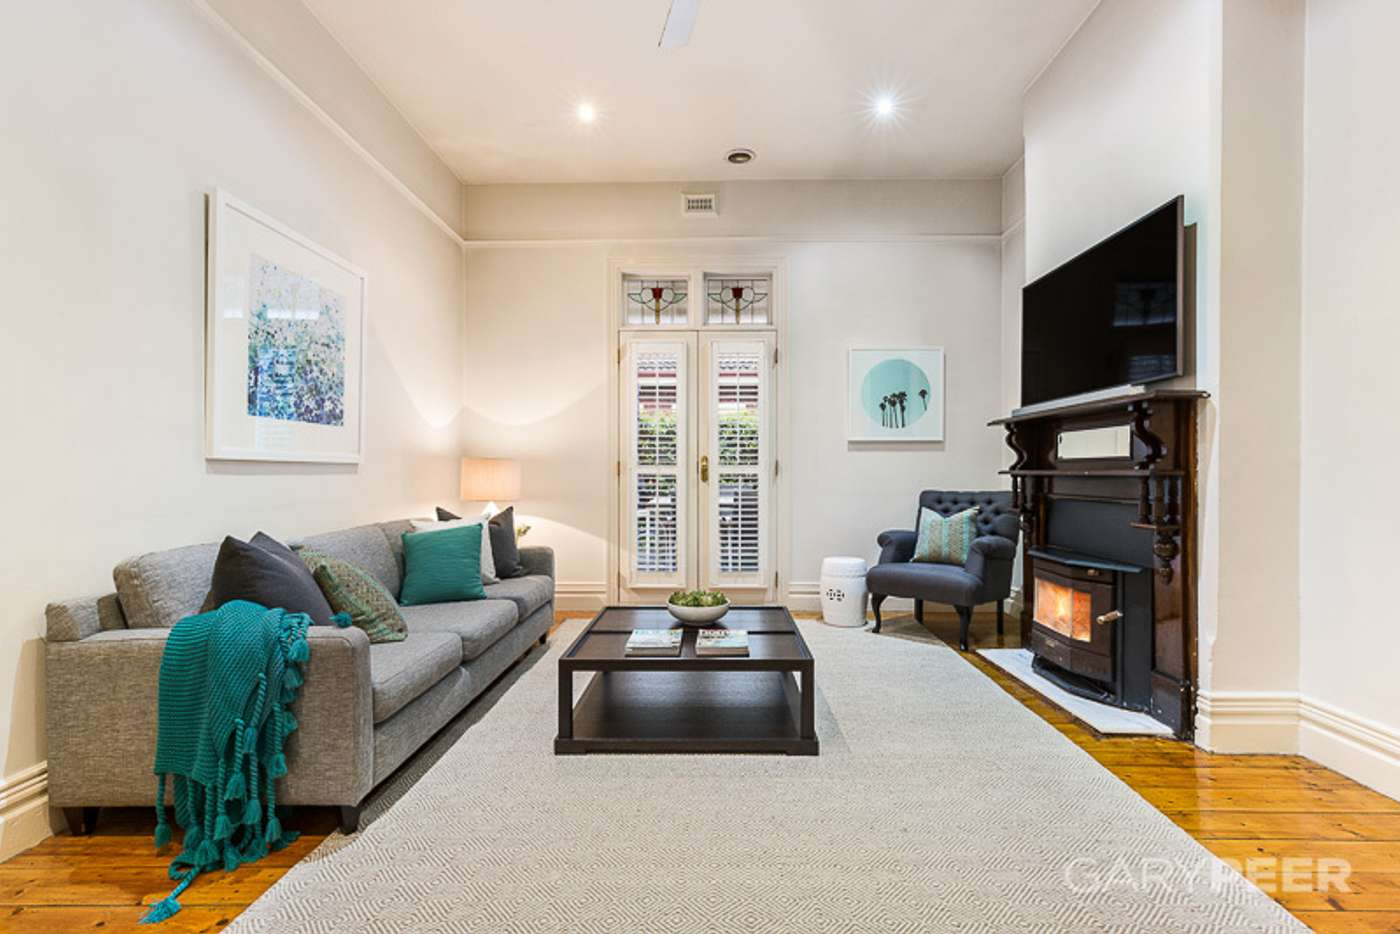 Sixth view of Homely house listing, 138 Neerim Road, Caulfield East VIC 3145